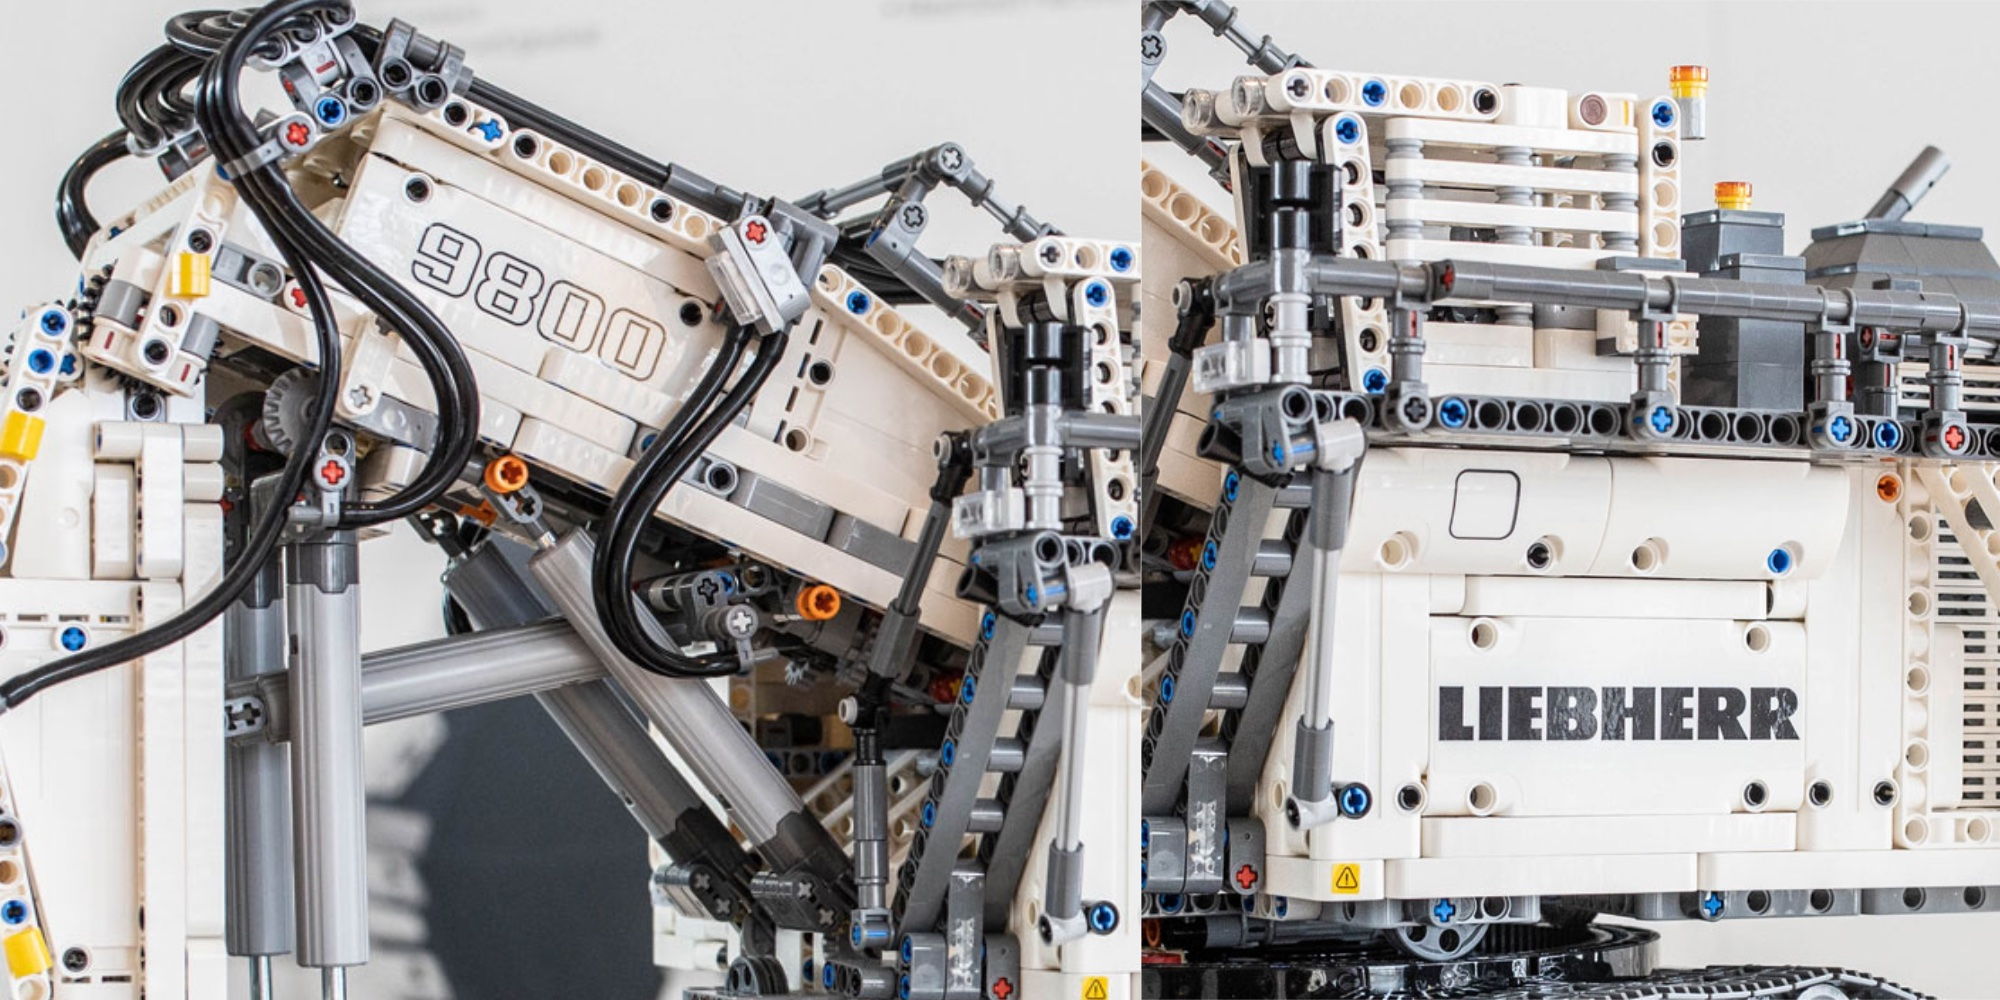 LEGO's upcoming 4,100-piece Technic Liebherr R 9800 is the 7th largest set to date